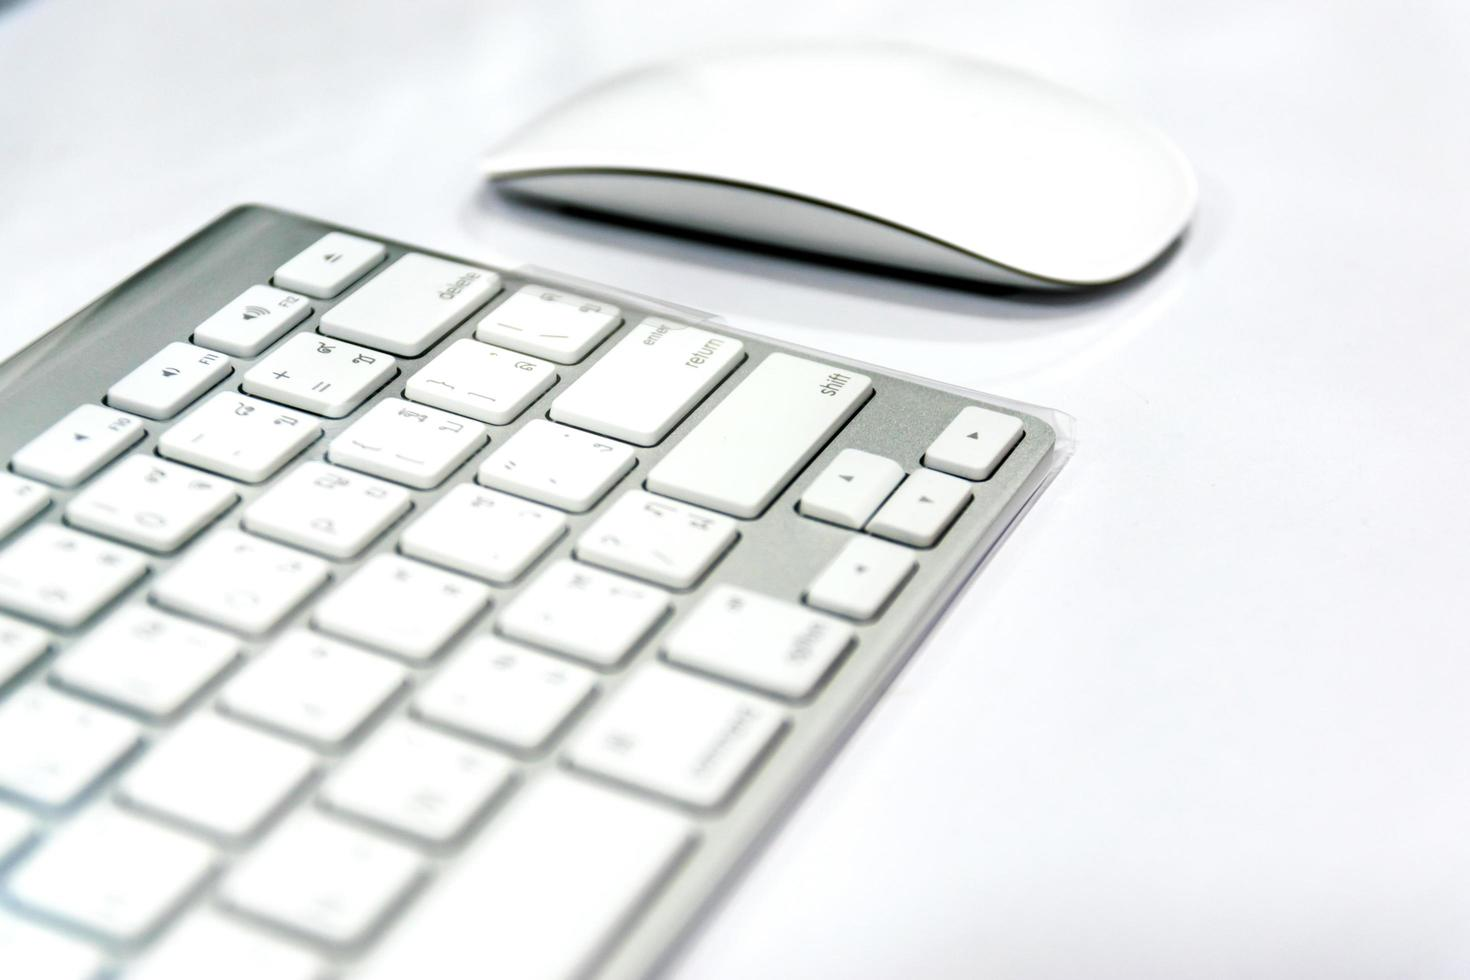 Wireless mouse and keyboard photo